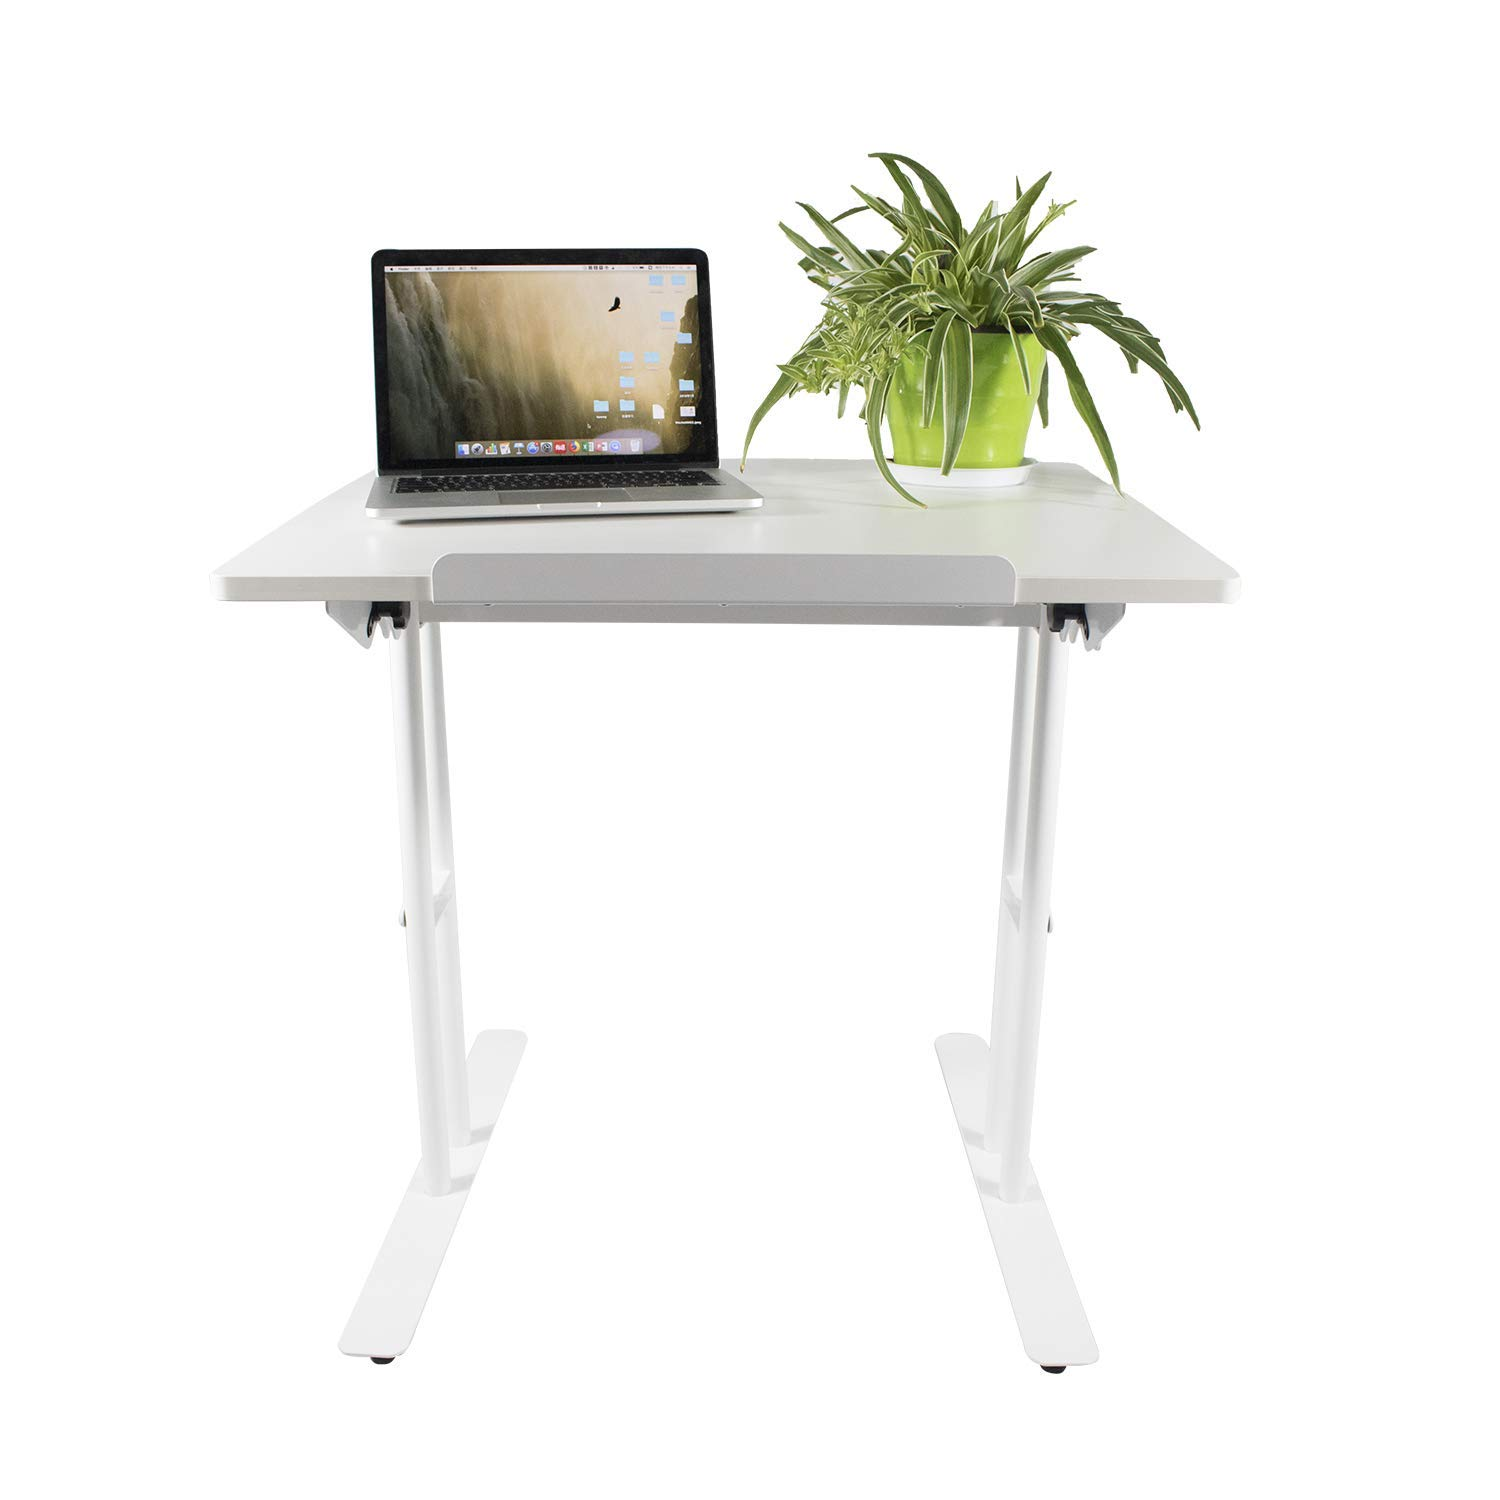 Design Furniture Collection Notebook Computer Adjustable Table Standing Desk Writing Study Desk Home Office (White)